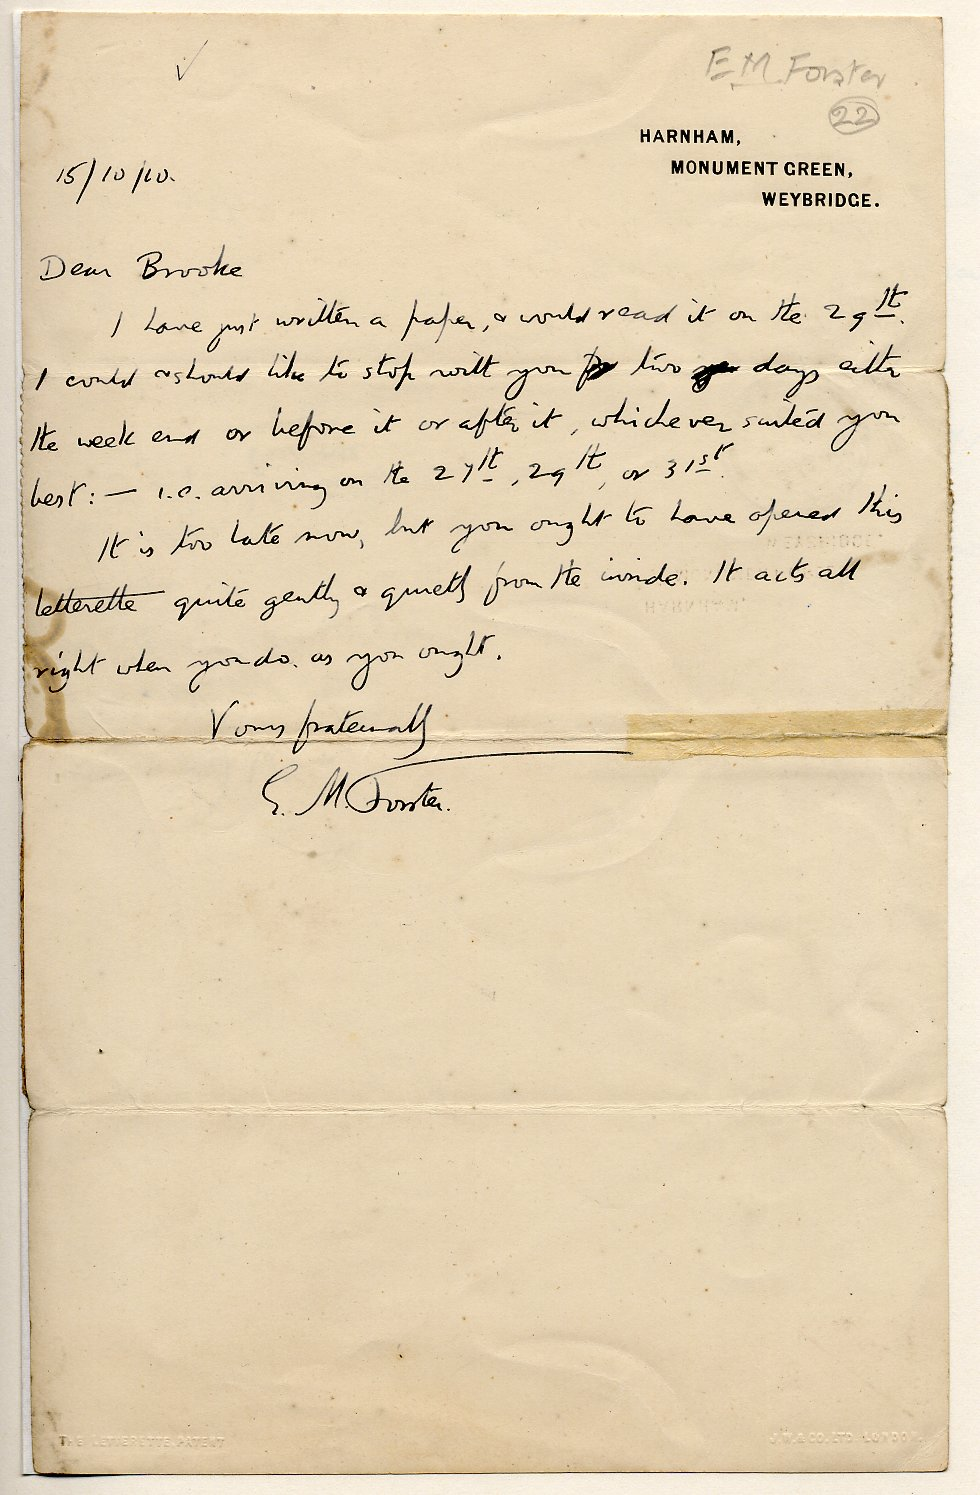 Letter from E.M. Forster to Rupert Brooke, 15 October 1910. Archive Centre, King's College, Cambridge. RCB/L/1/22